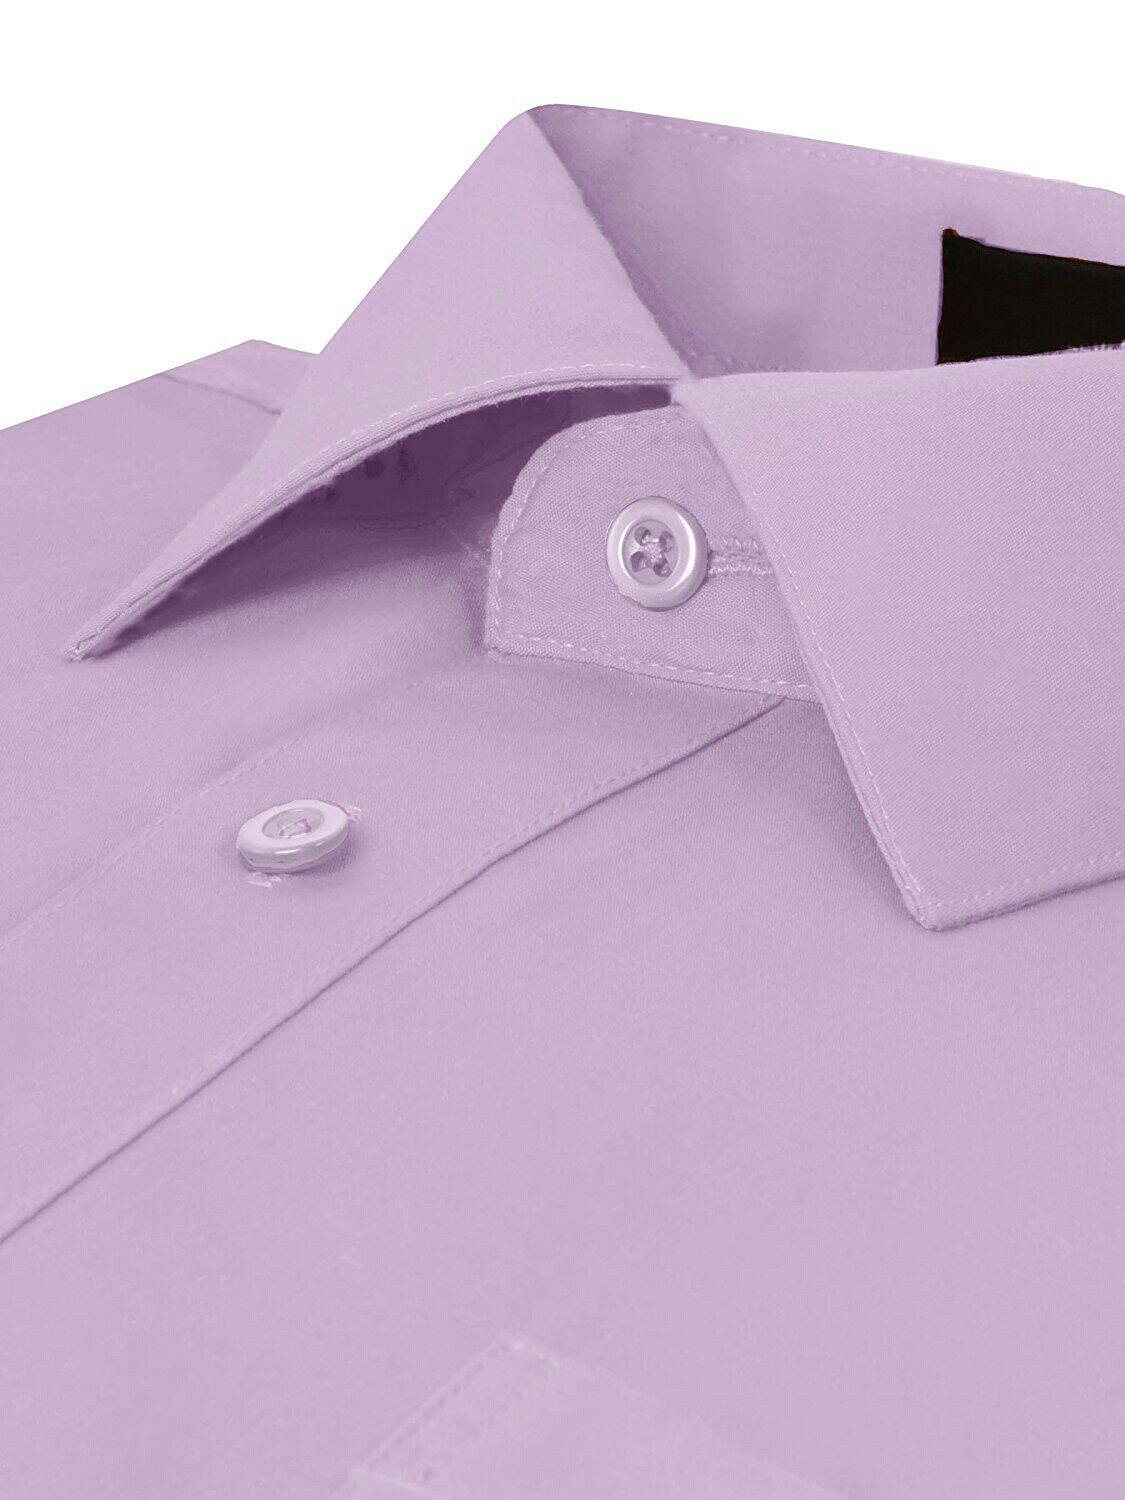 Omega-Italy-Men-039-s-Premium-Slim-Fit-Button-Up-Long-Sleeve-Solid-Color-Dress-Shirt thumbnail 50